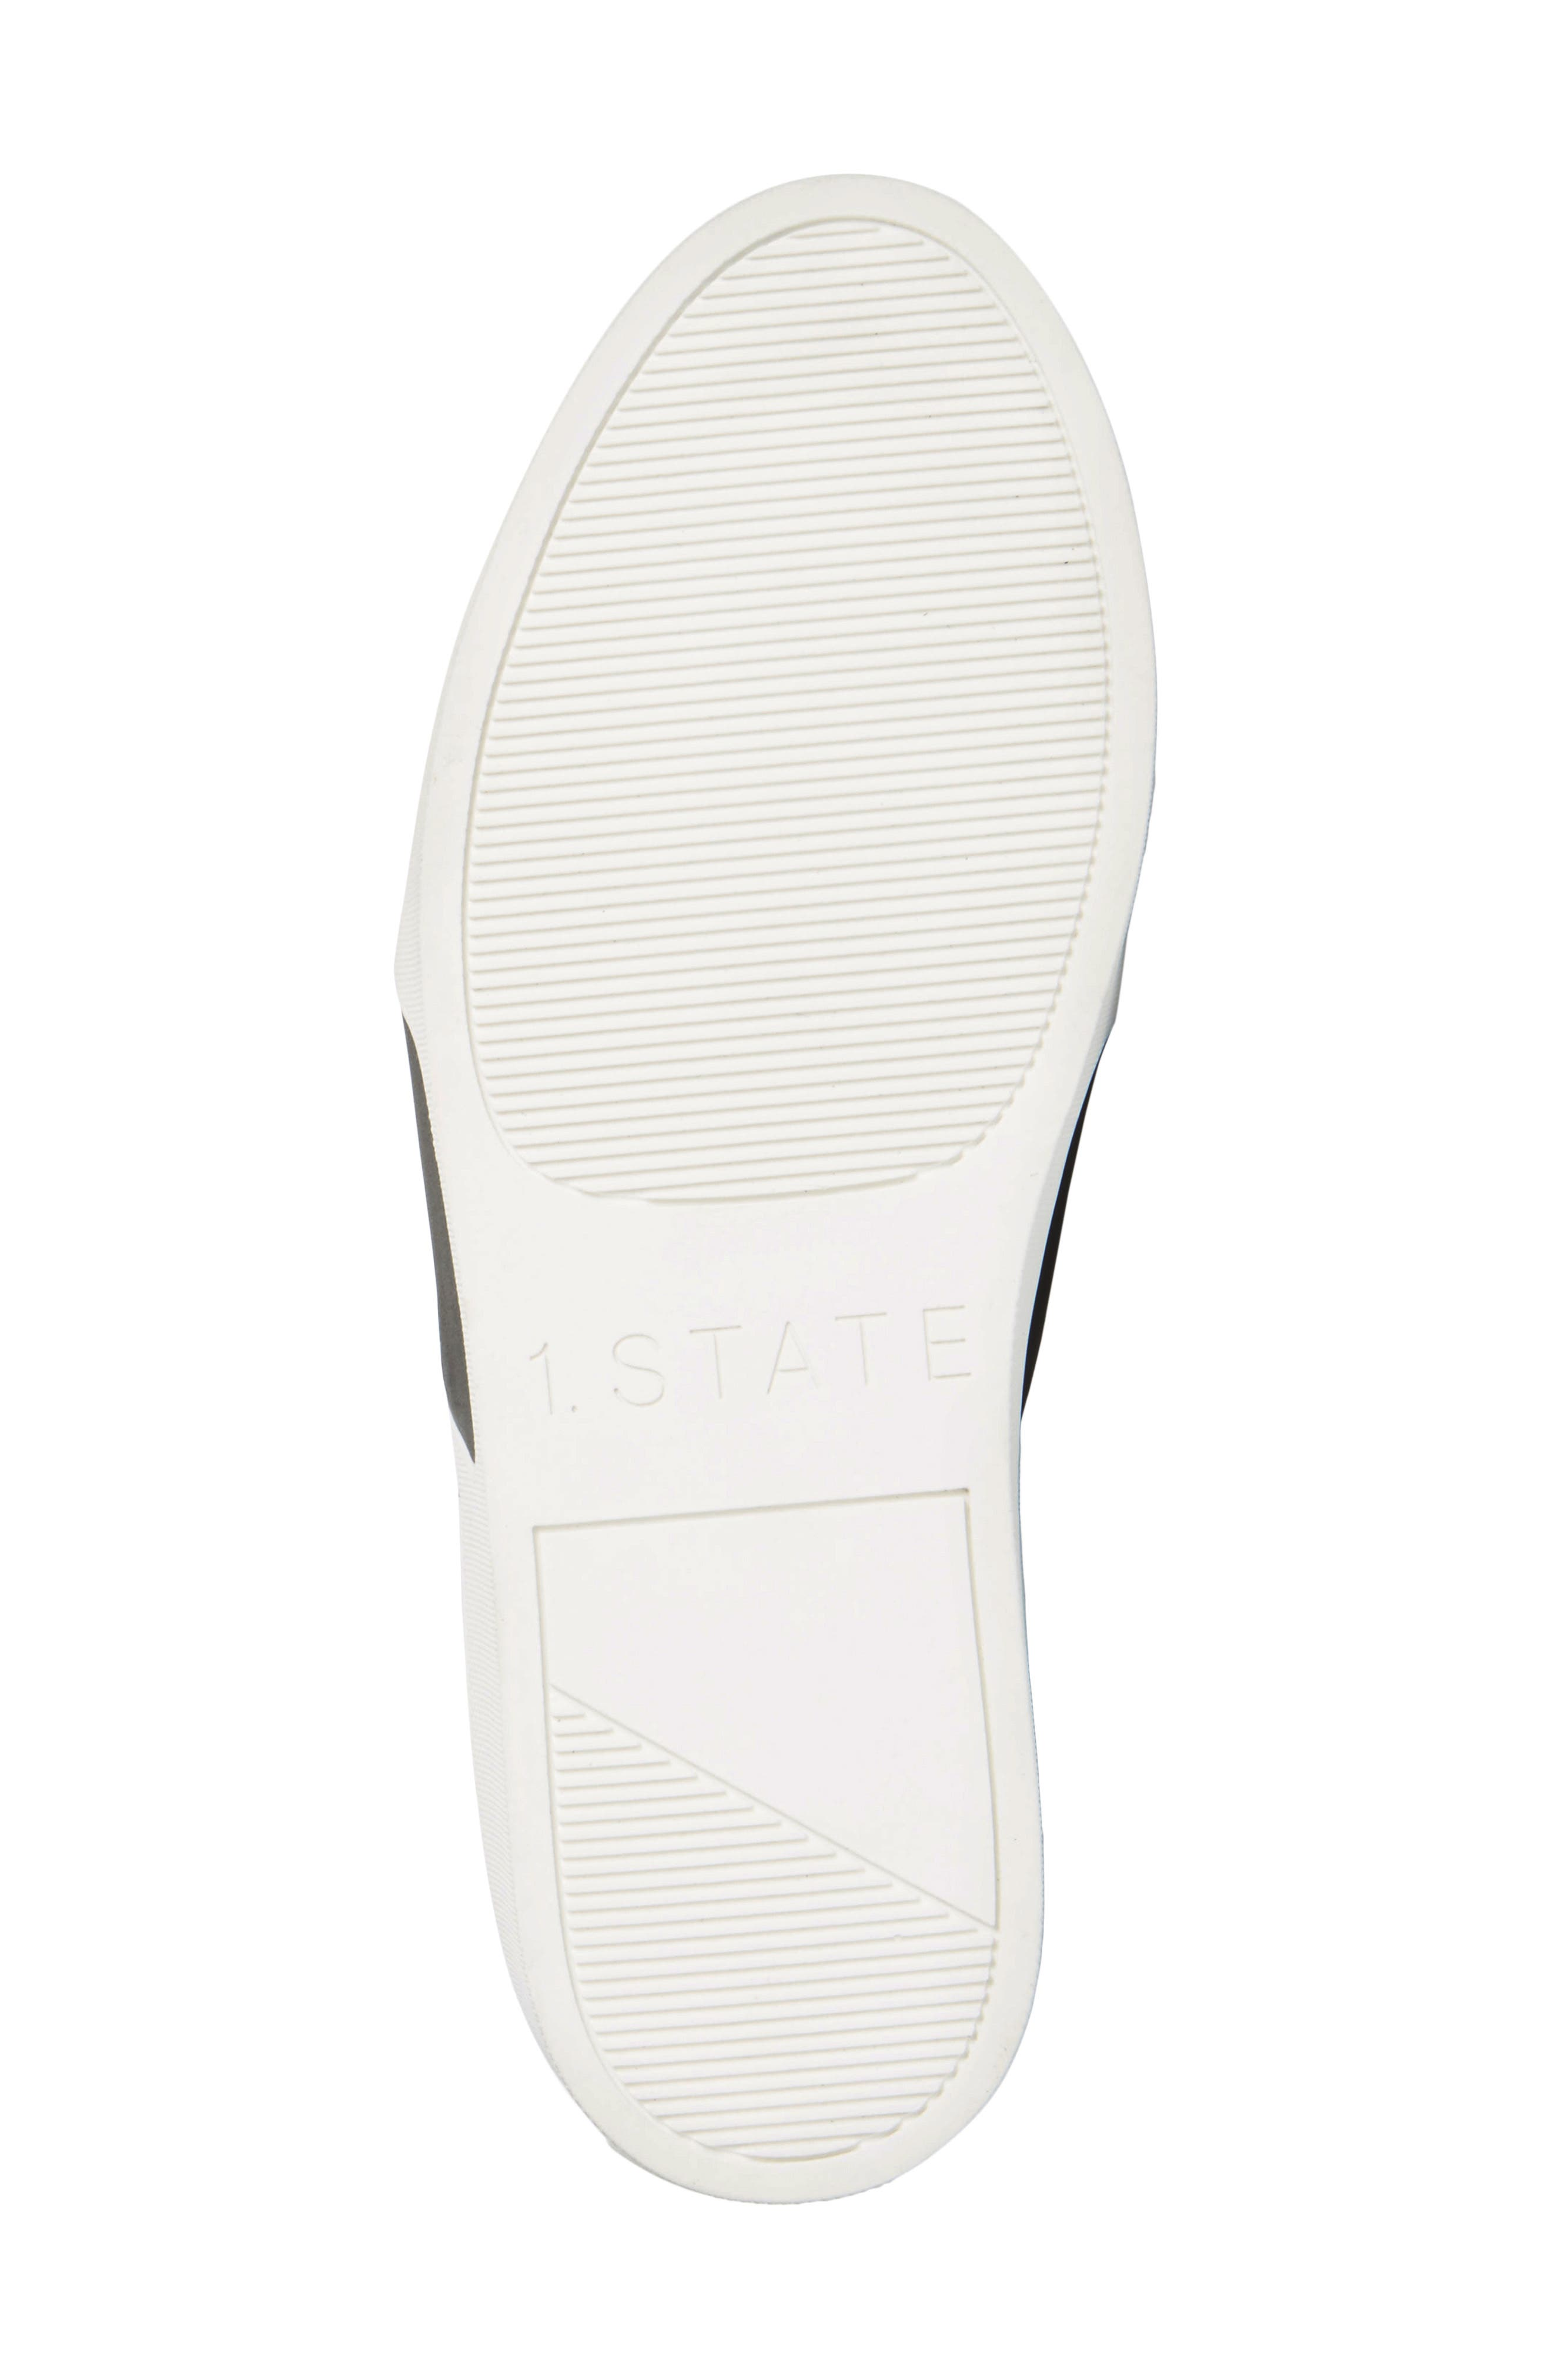 Waylan Slip-On Sneaker,                             Alternate thumbnail 6, color,                             006